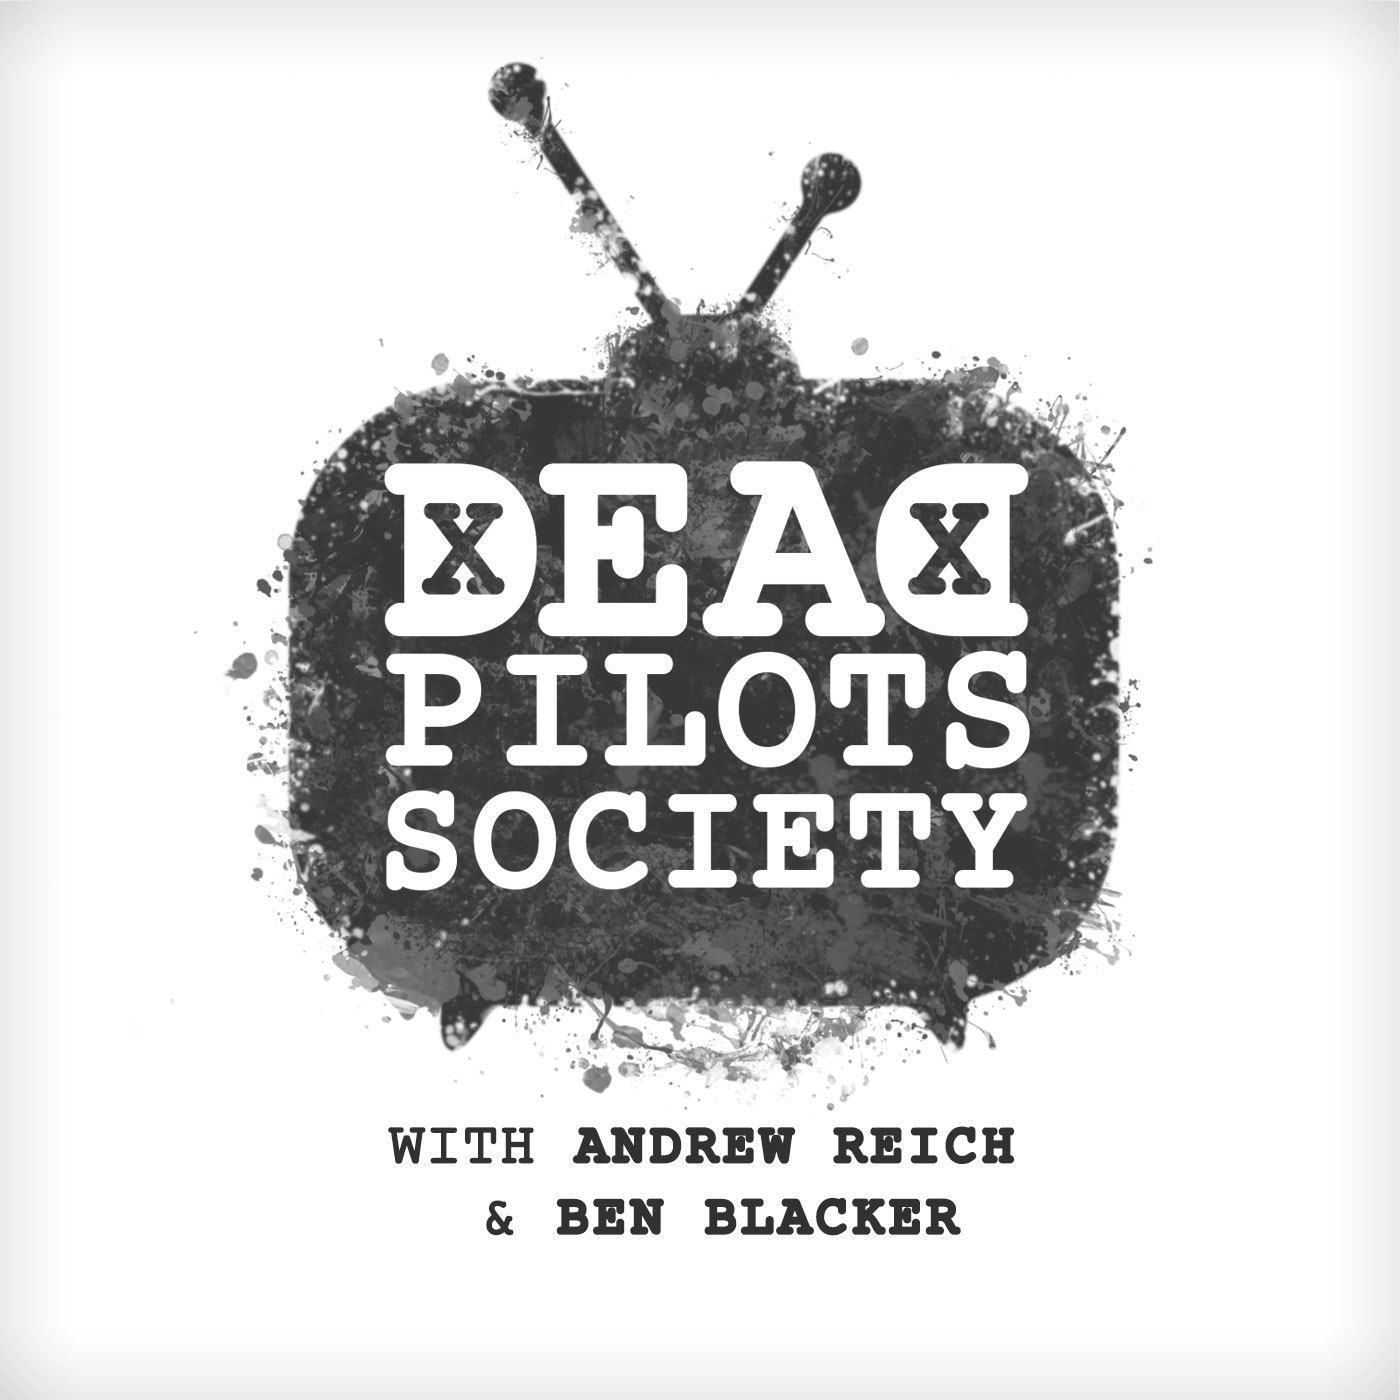 Dead Pilots SocietyEpisode 10 – Bachelor Party(May 25th, 2017) - In this episode of Dead Pilots Society, Andrew Reich interviews JJ Philbin (New Girl, Saturday Night Live) and Josh Malmuth (New Girl, Superstore) regarding their dead pilot, Bachelor Party. You'll also listen to a never-before-heard live table read of Bachelor Party performed by some of today's funniest comedic actors.